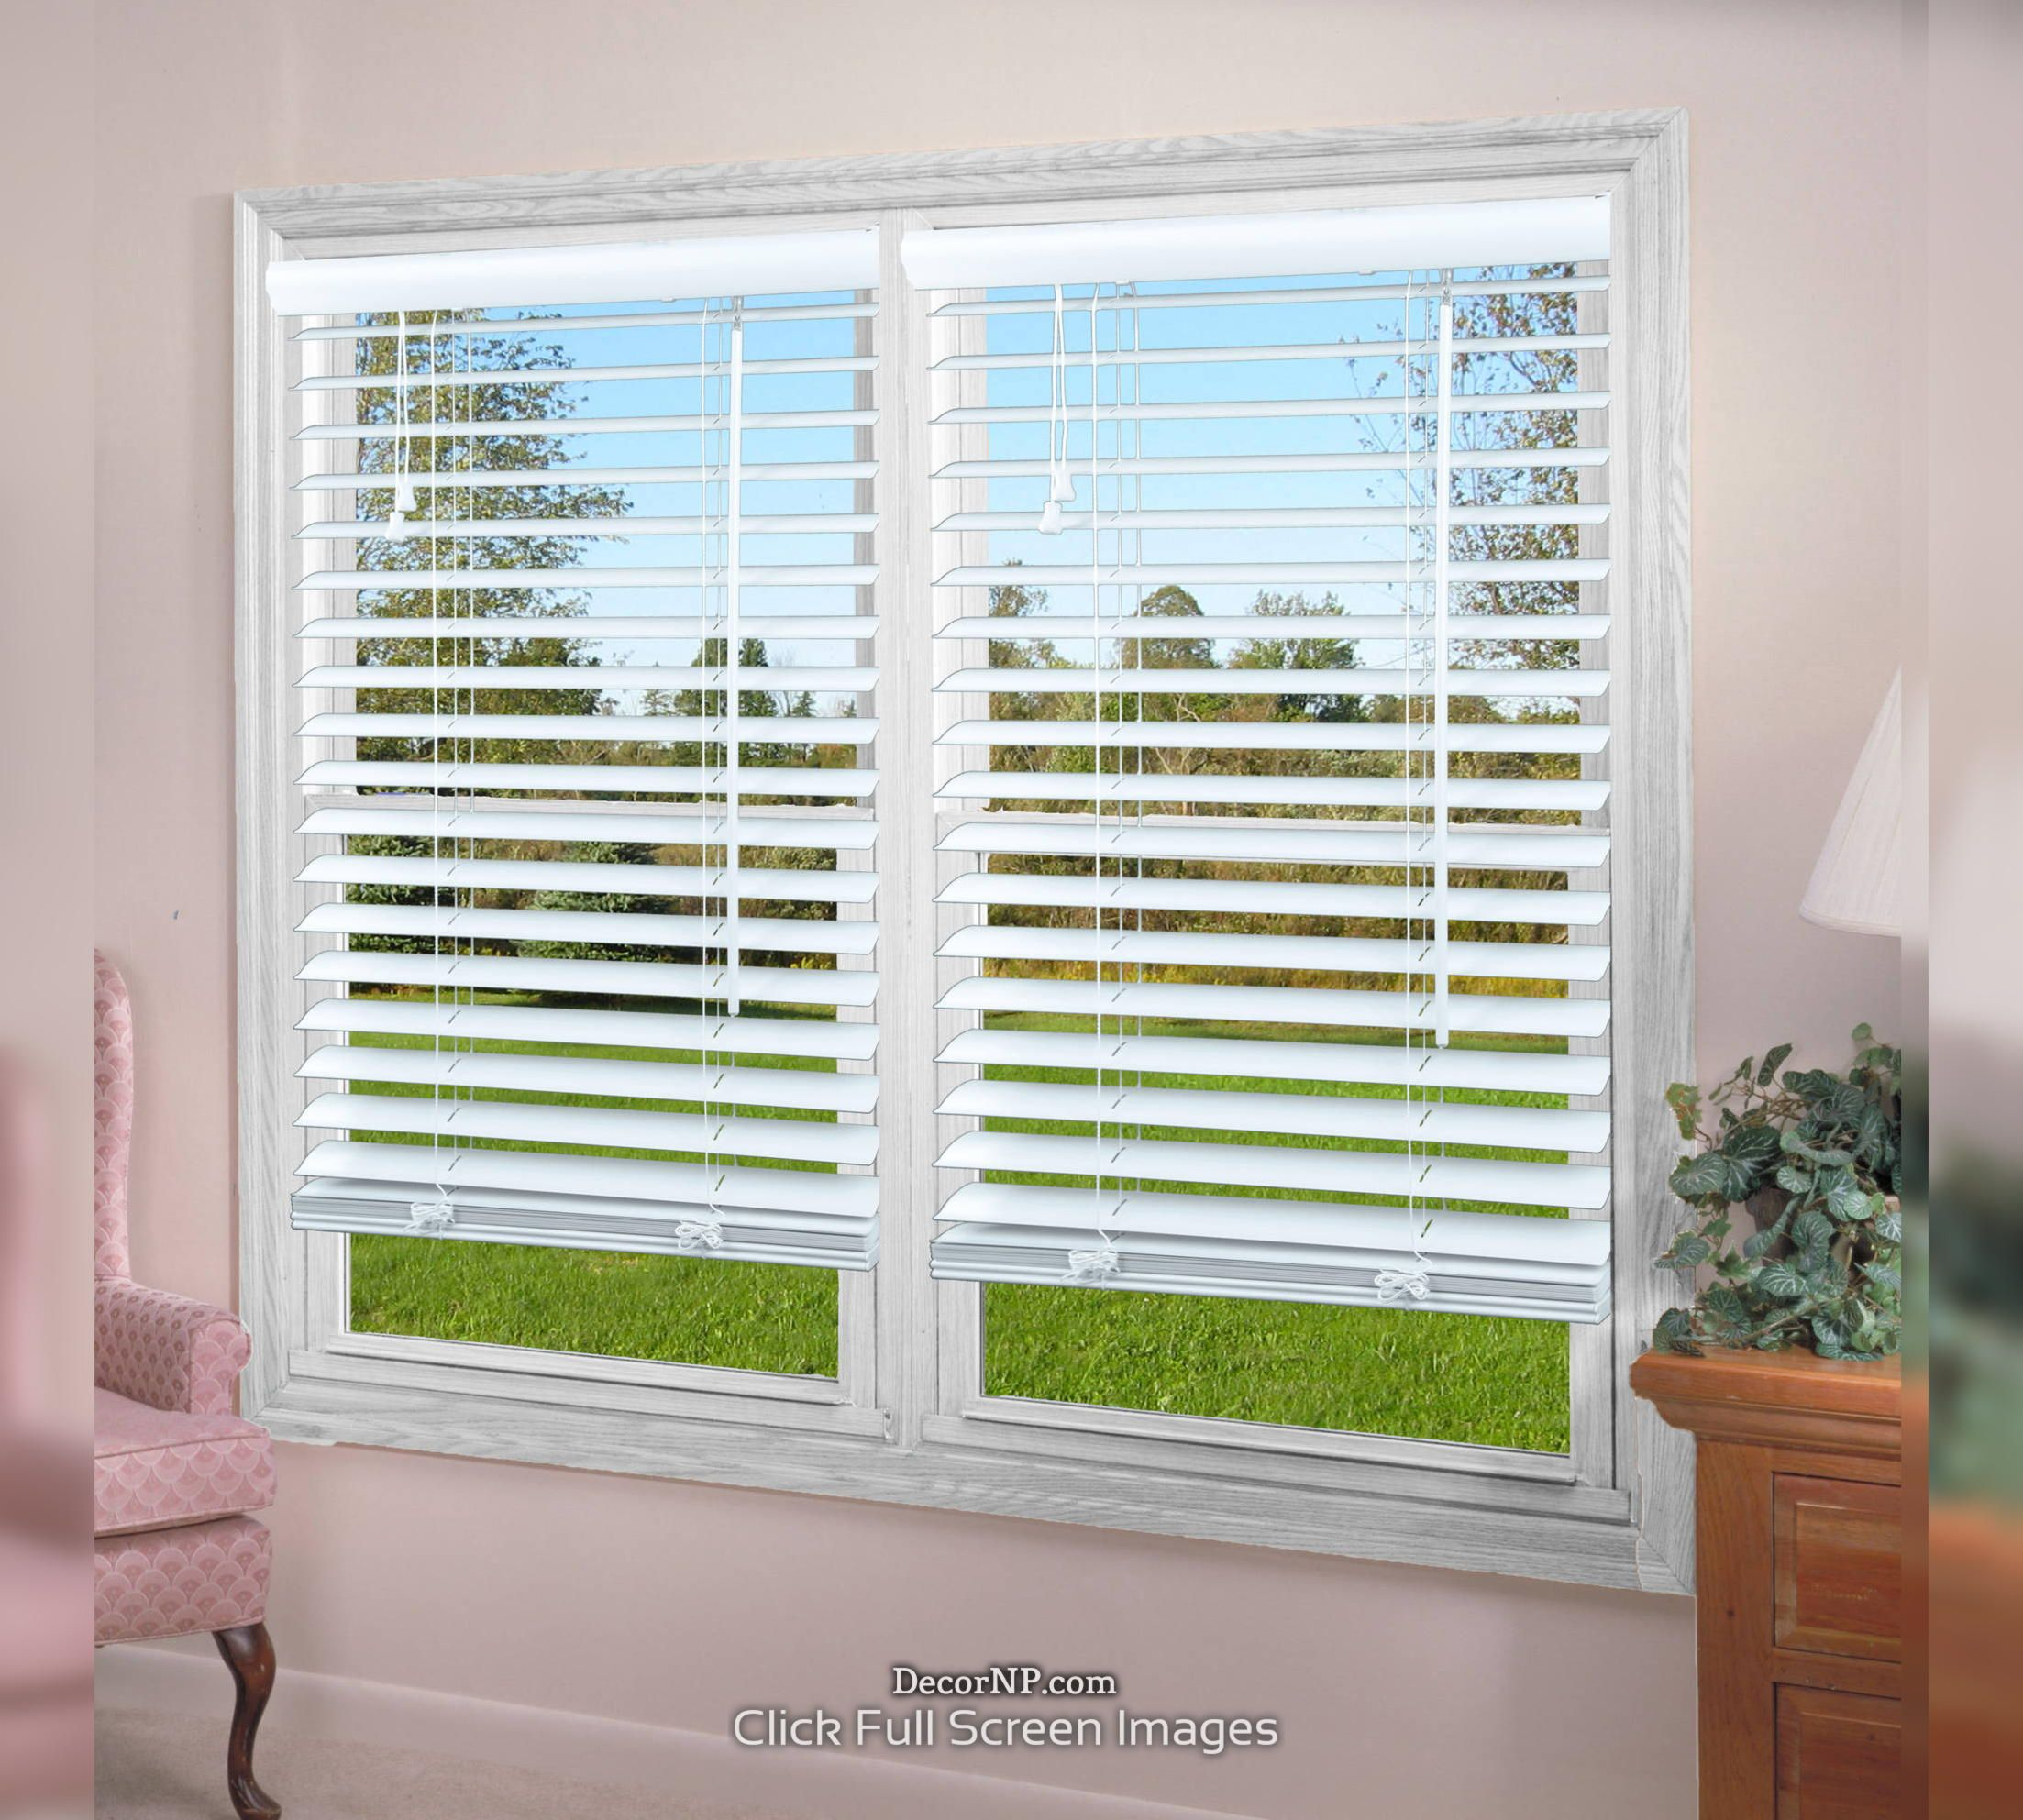 Latest Modern Wooden Window Blinds In 2019 Decornp Vinyl Blinds White Window Treatments Blinds For Windows